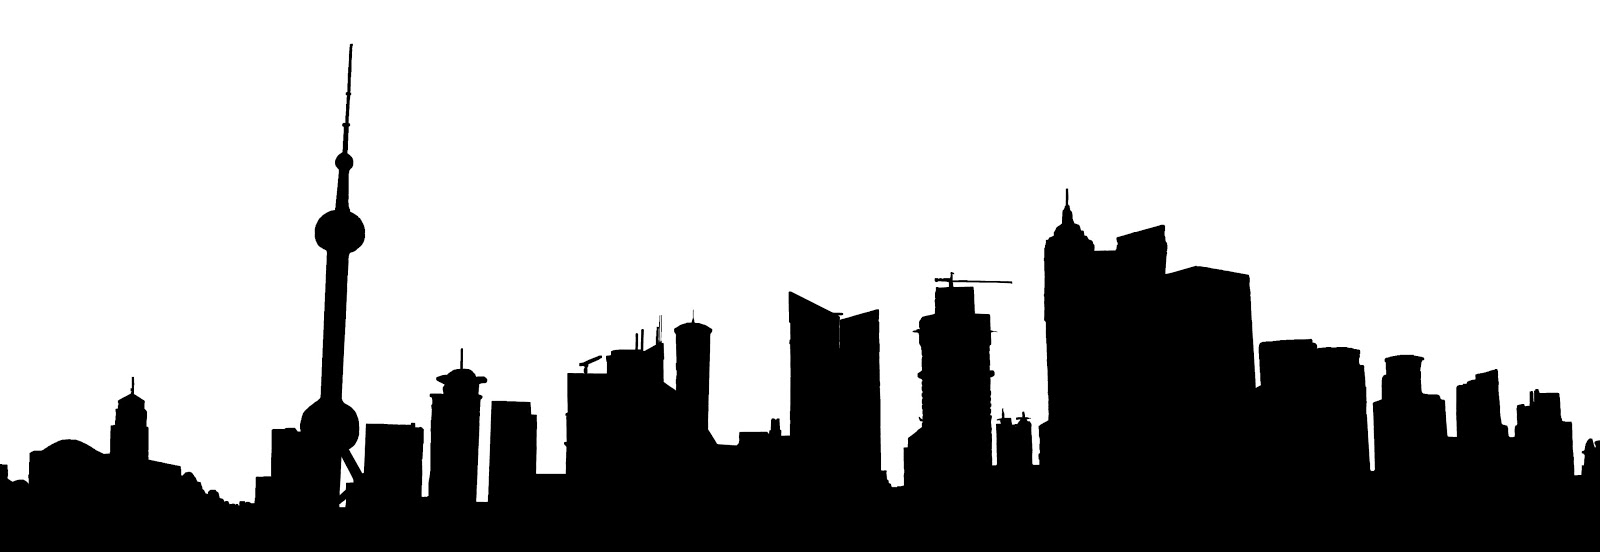 1600x552 Stock Pictures Shanghai Skyscraper Sketches And Silhouette